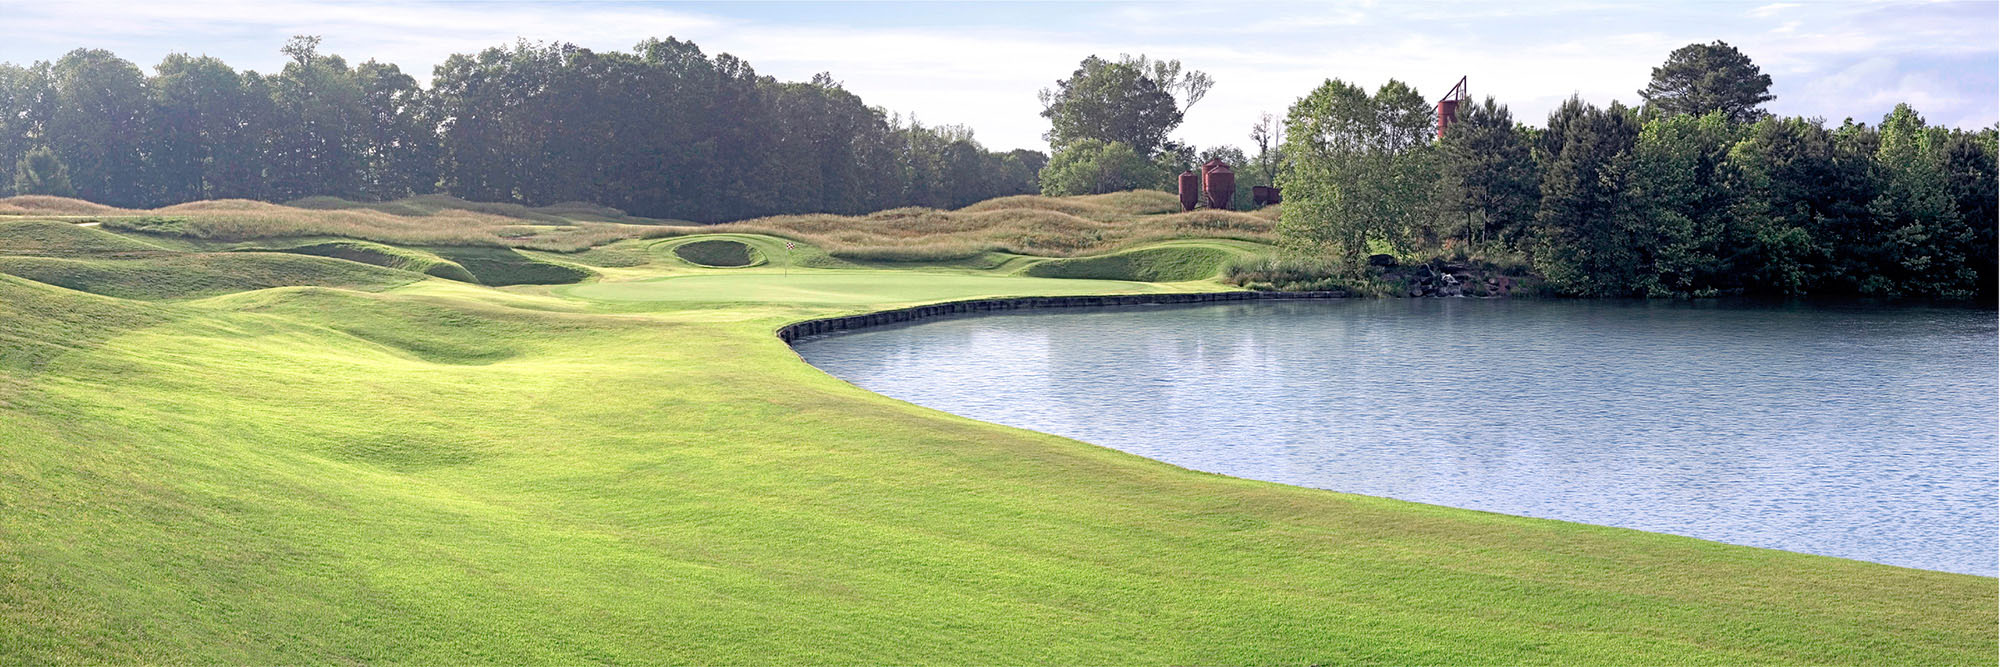 Golf Course Image - Atlanta National Golf Club No. 12